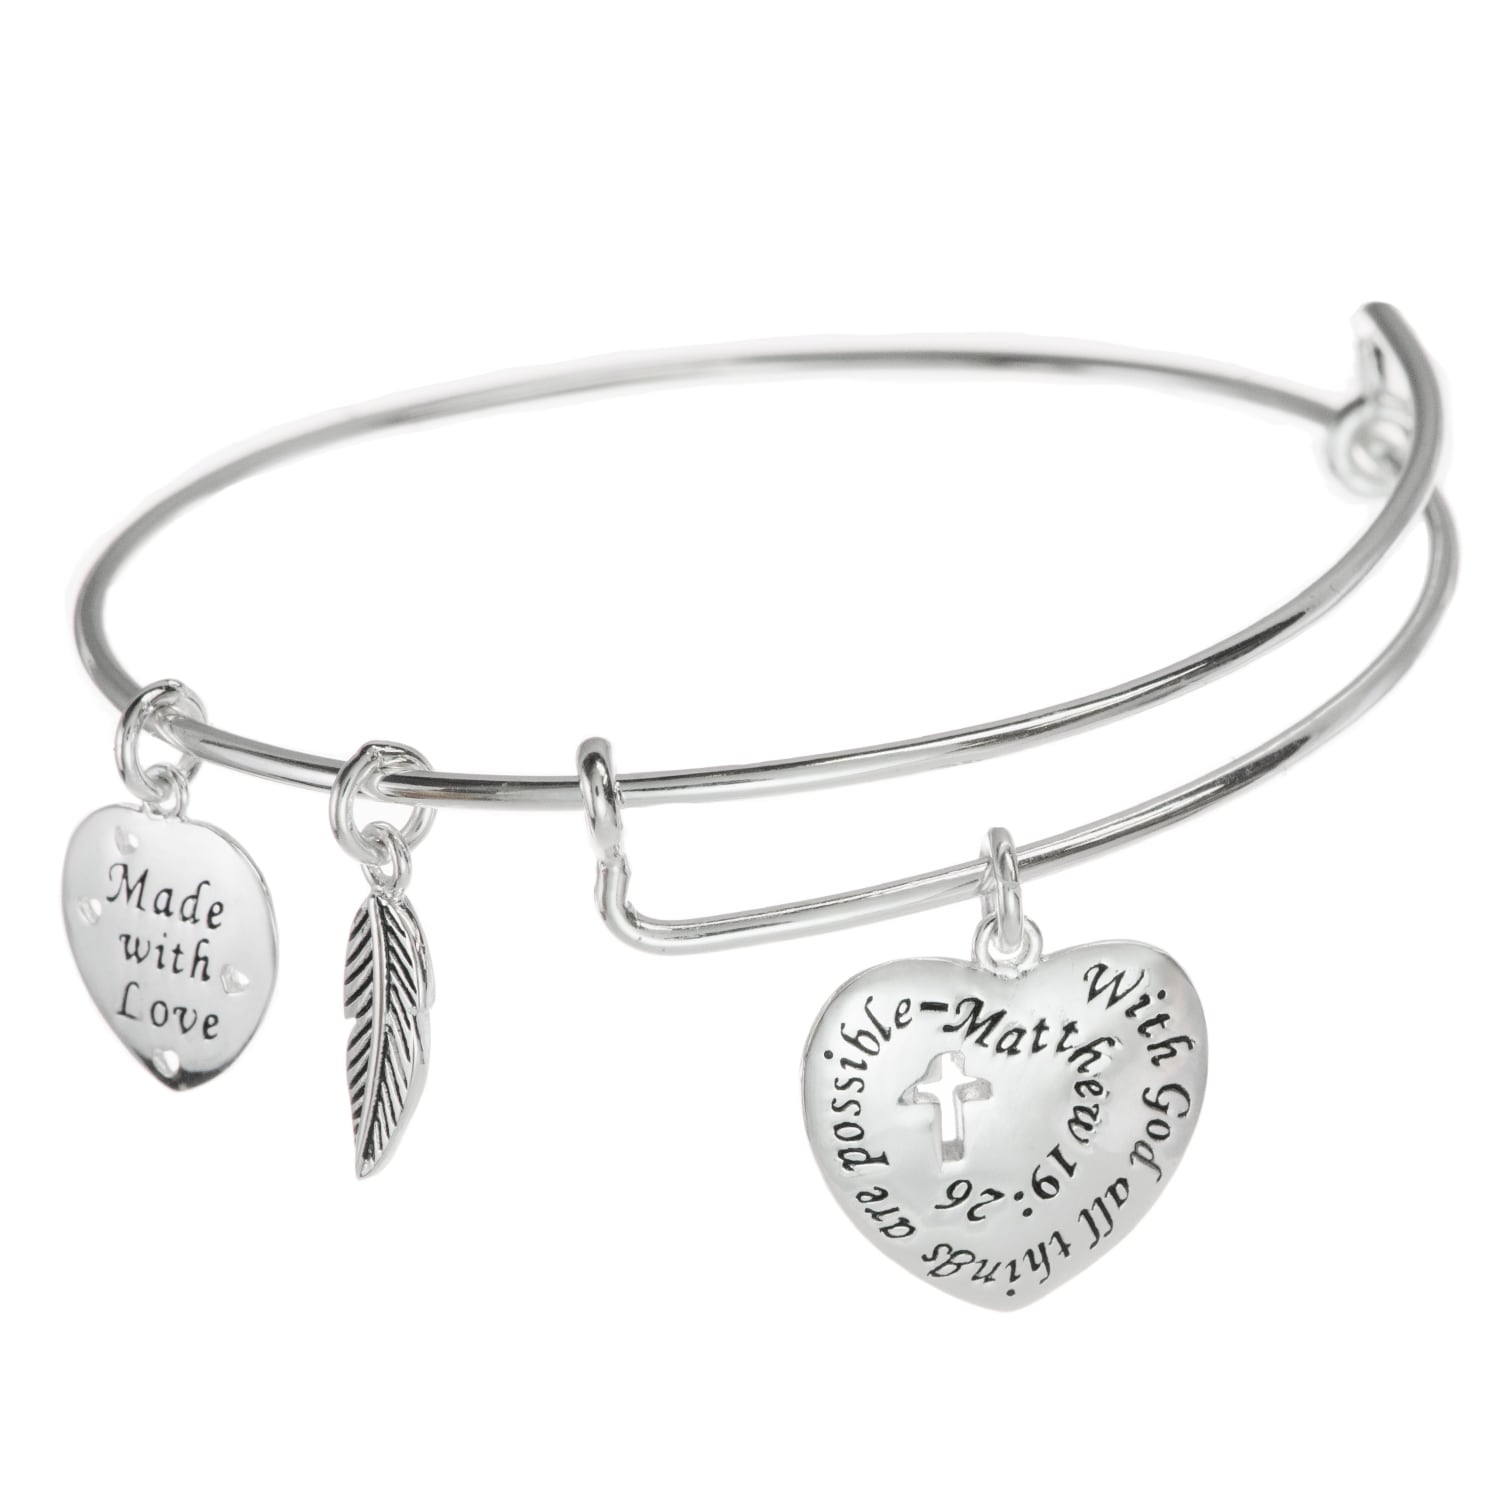 Qina C Sterling Silver Cross And Quote Leaf Dangle Charm Adjule Wire Bangle Bracelet